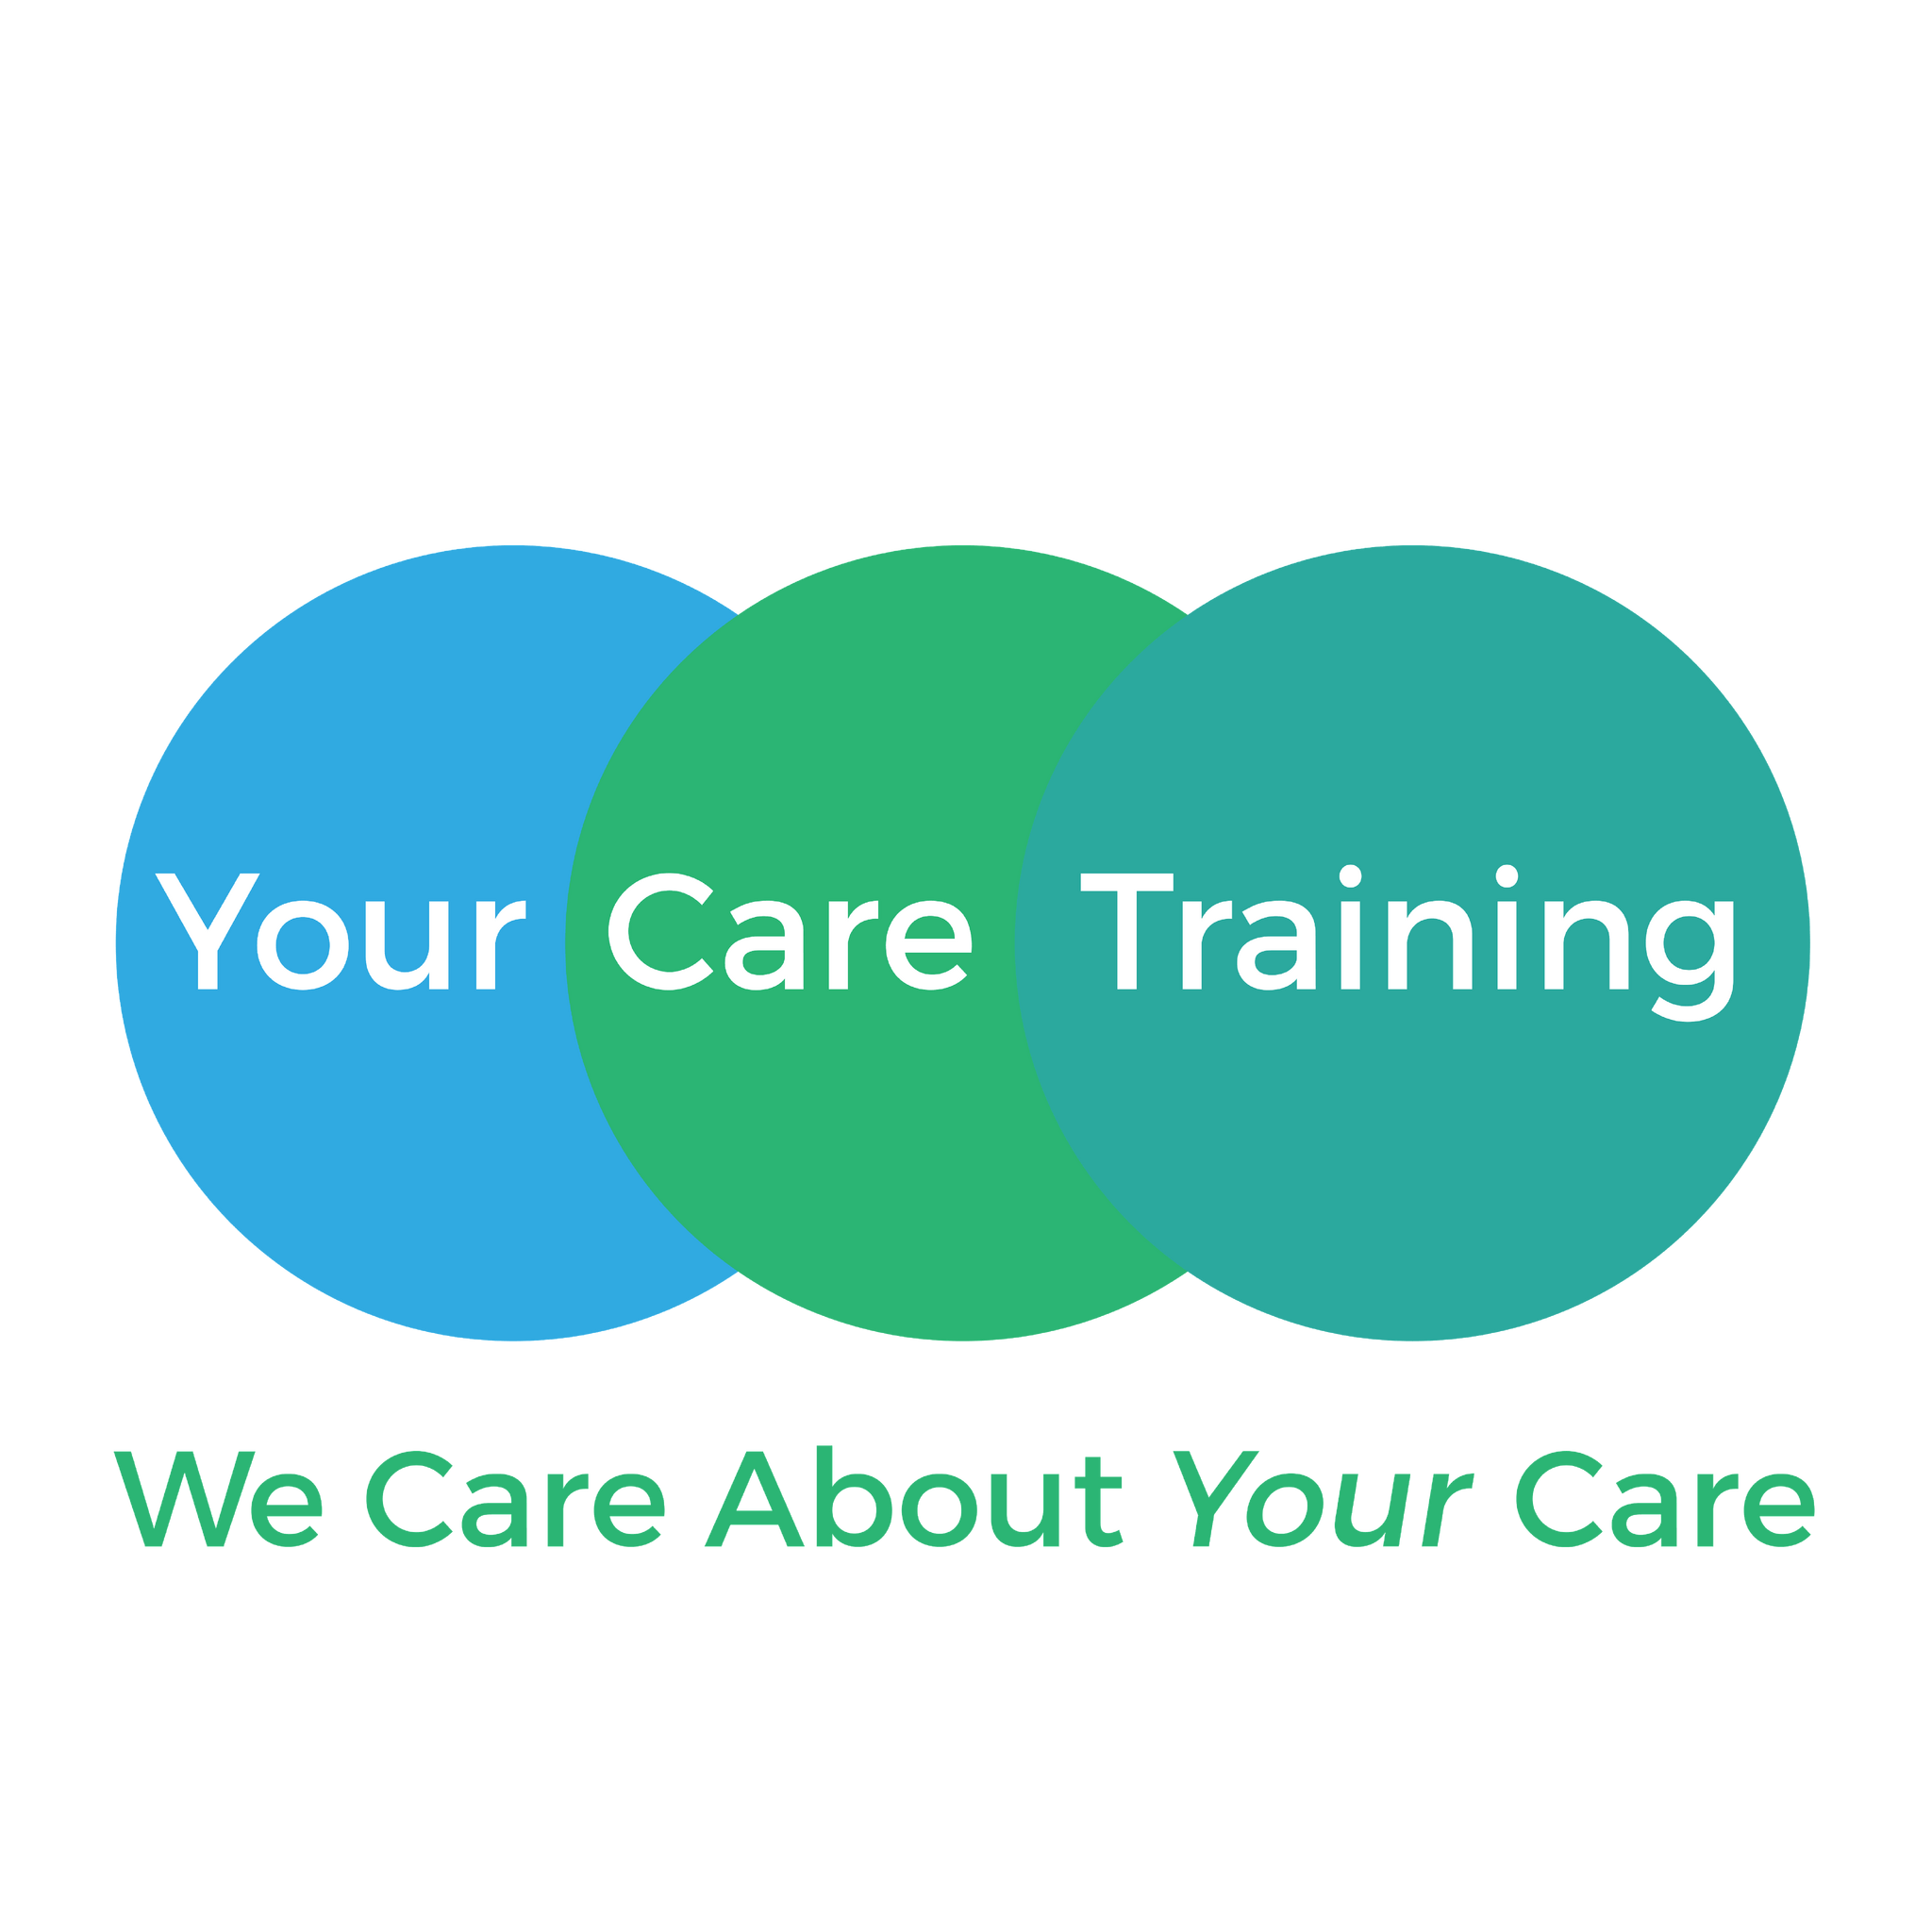 Your Care Training